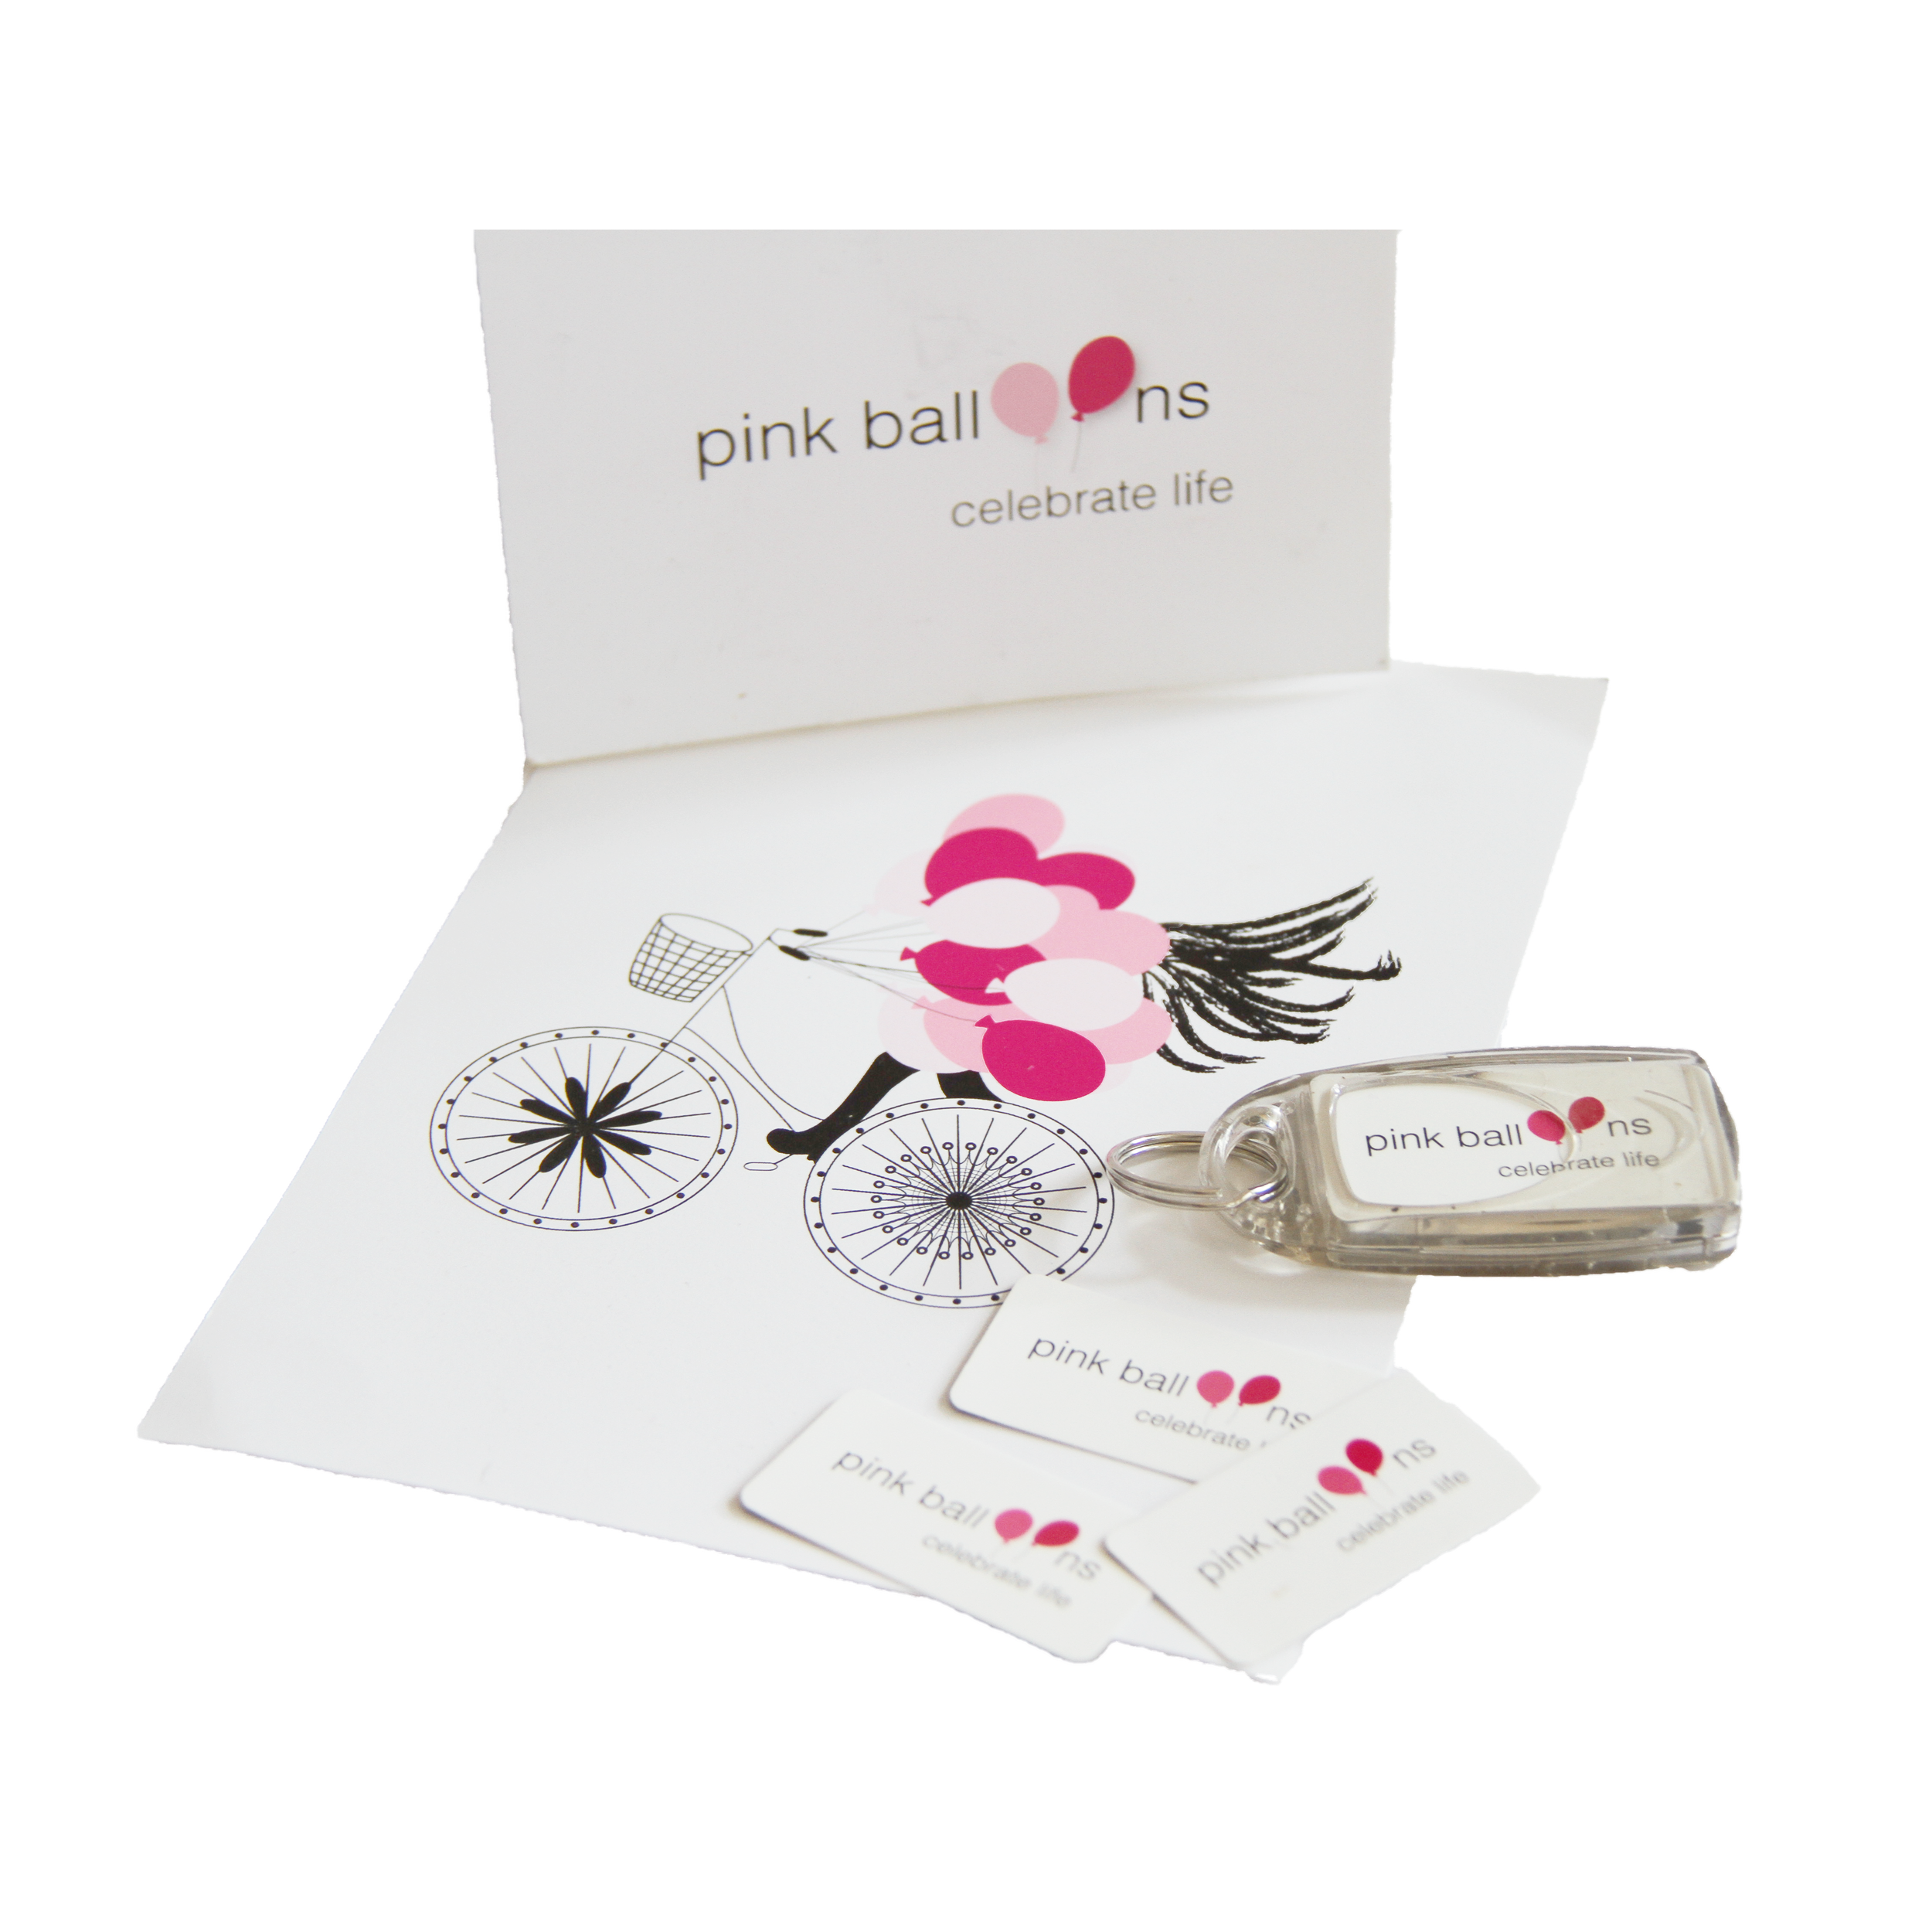 Pink Balloons business cards